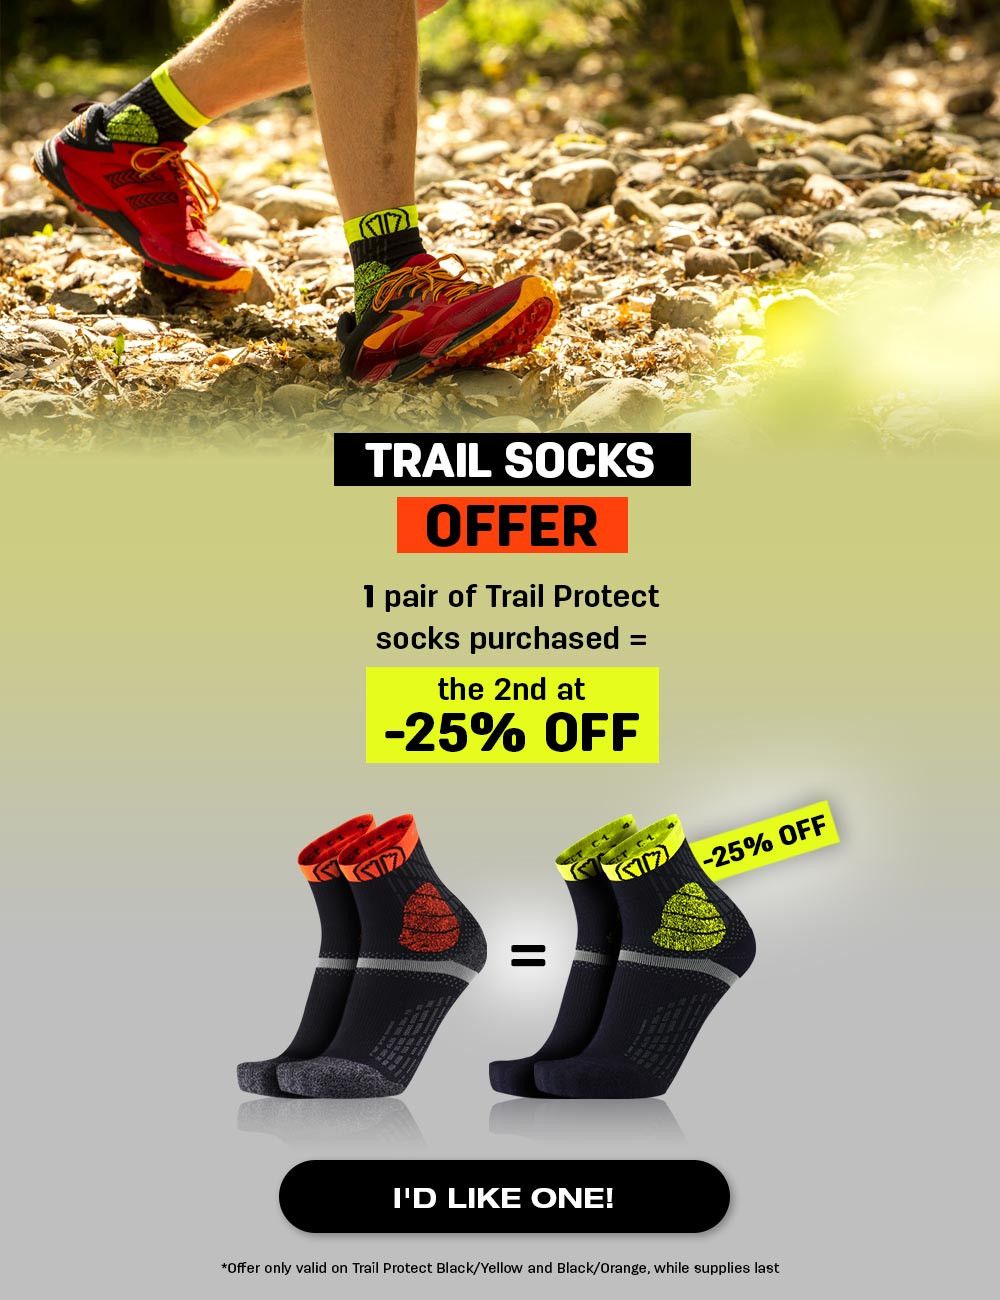 Buy 1 pair of Yellow or Orange Trail protect sock and get the 2nd at 25% OFF!